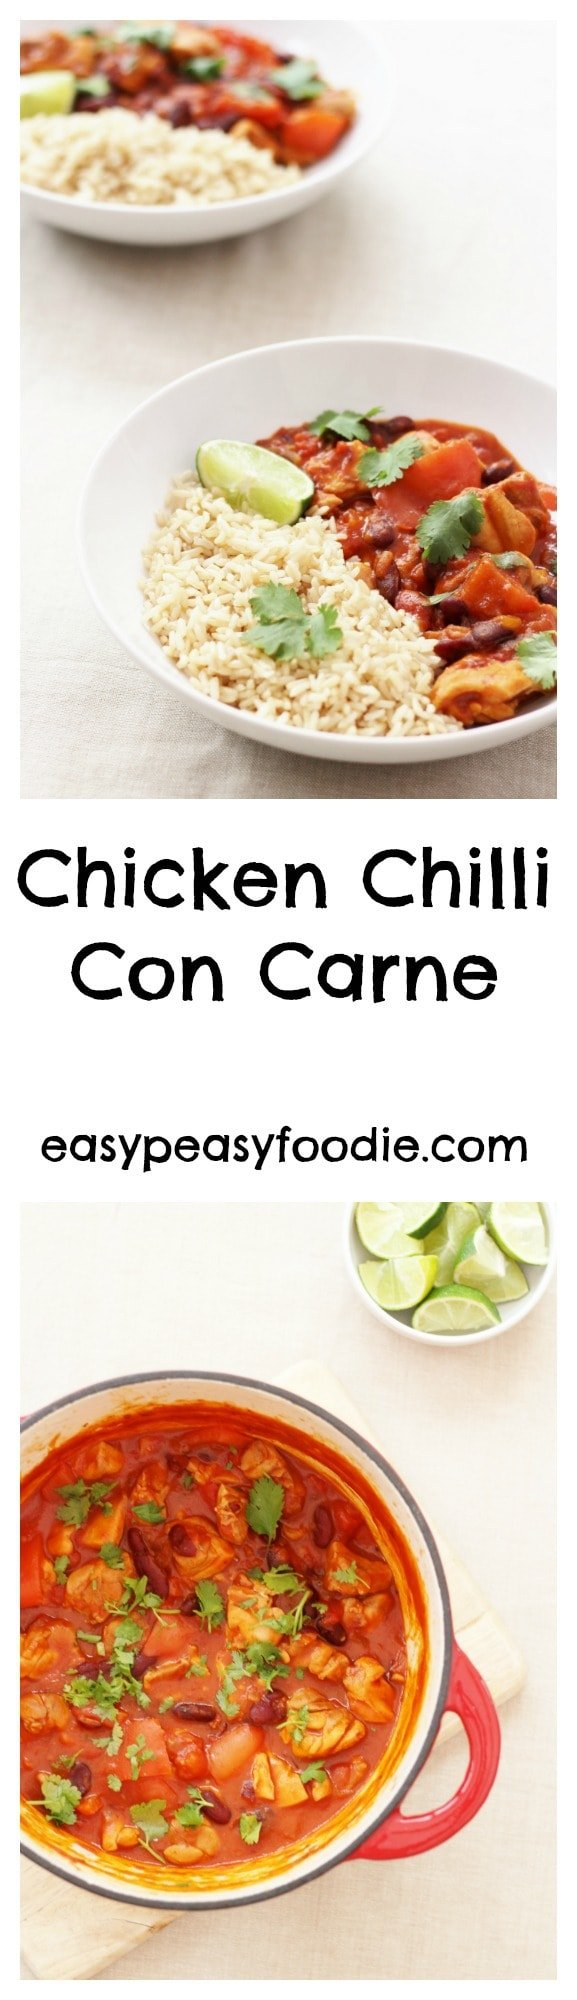 An easy peasy twist on a classic, this Chicken Chilli Con Carne is easy, healthy and totally delicious – plus it can be made in under 30 minutes – perfect for busy weeknights! #chicken #chilli #chickenchilli #chickenchilliconcarne #chickenchili #makeahead #onepot #onepotdinner #glutenfree #dairyfree #easyentertaining #easymidweekmeals #easymeals #midweekmeals #easydinners #dinnertonight #dinnertonite #familydinners #familyfood #easypeasyfoodie #cookblogshare